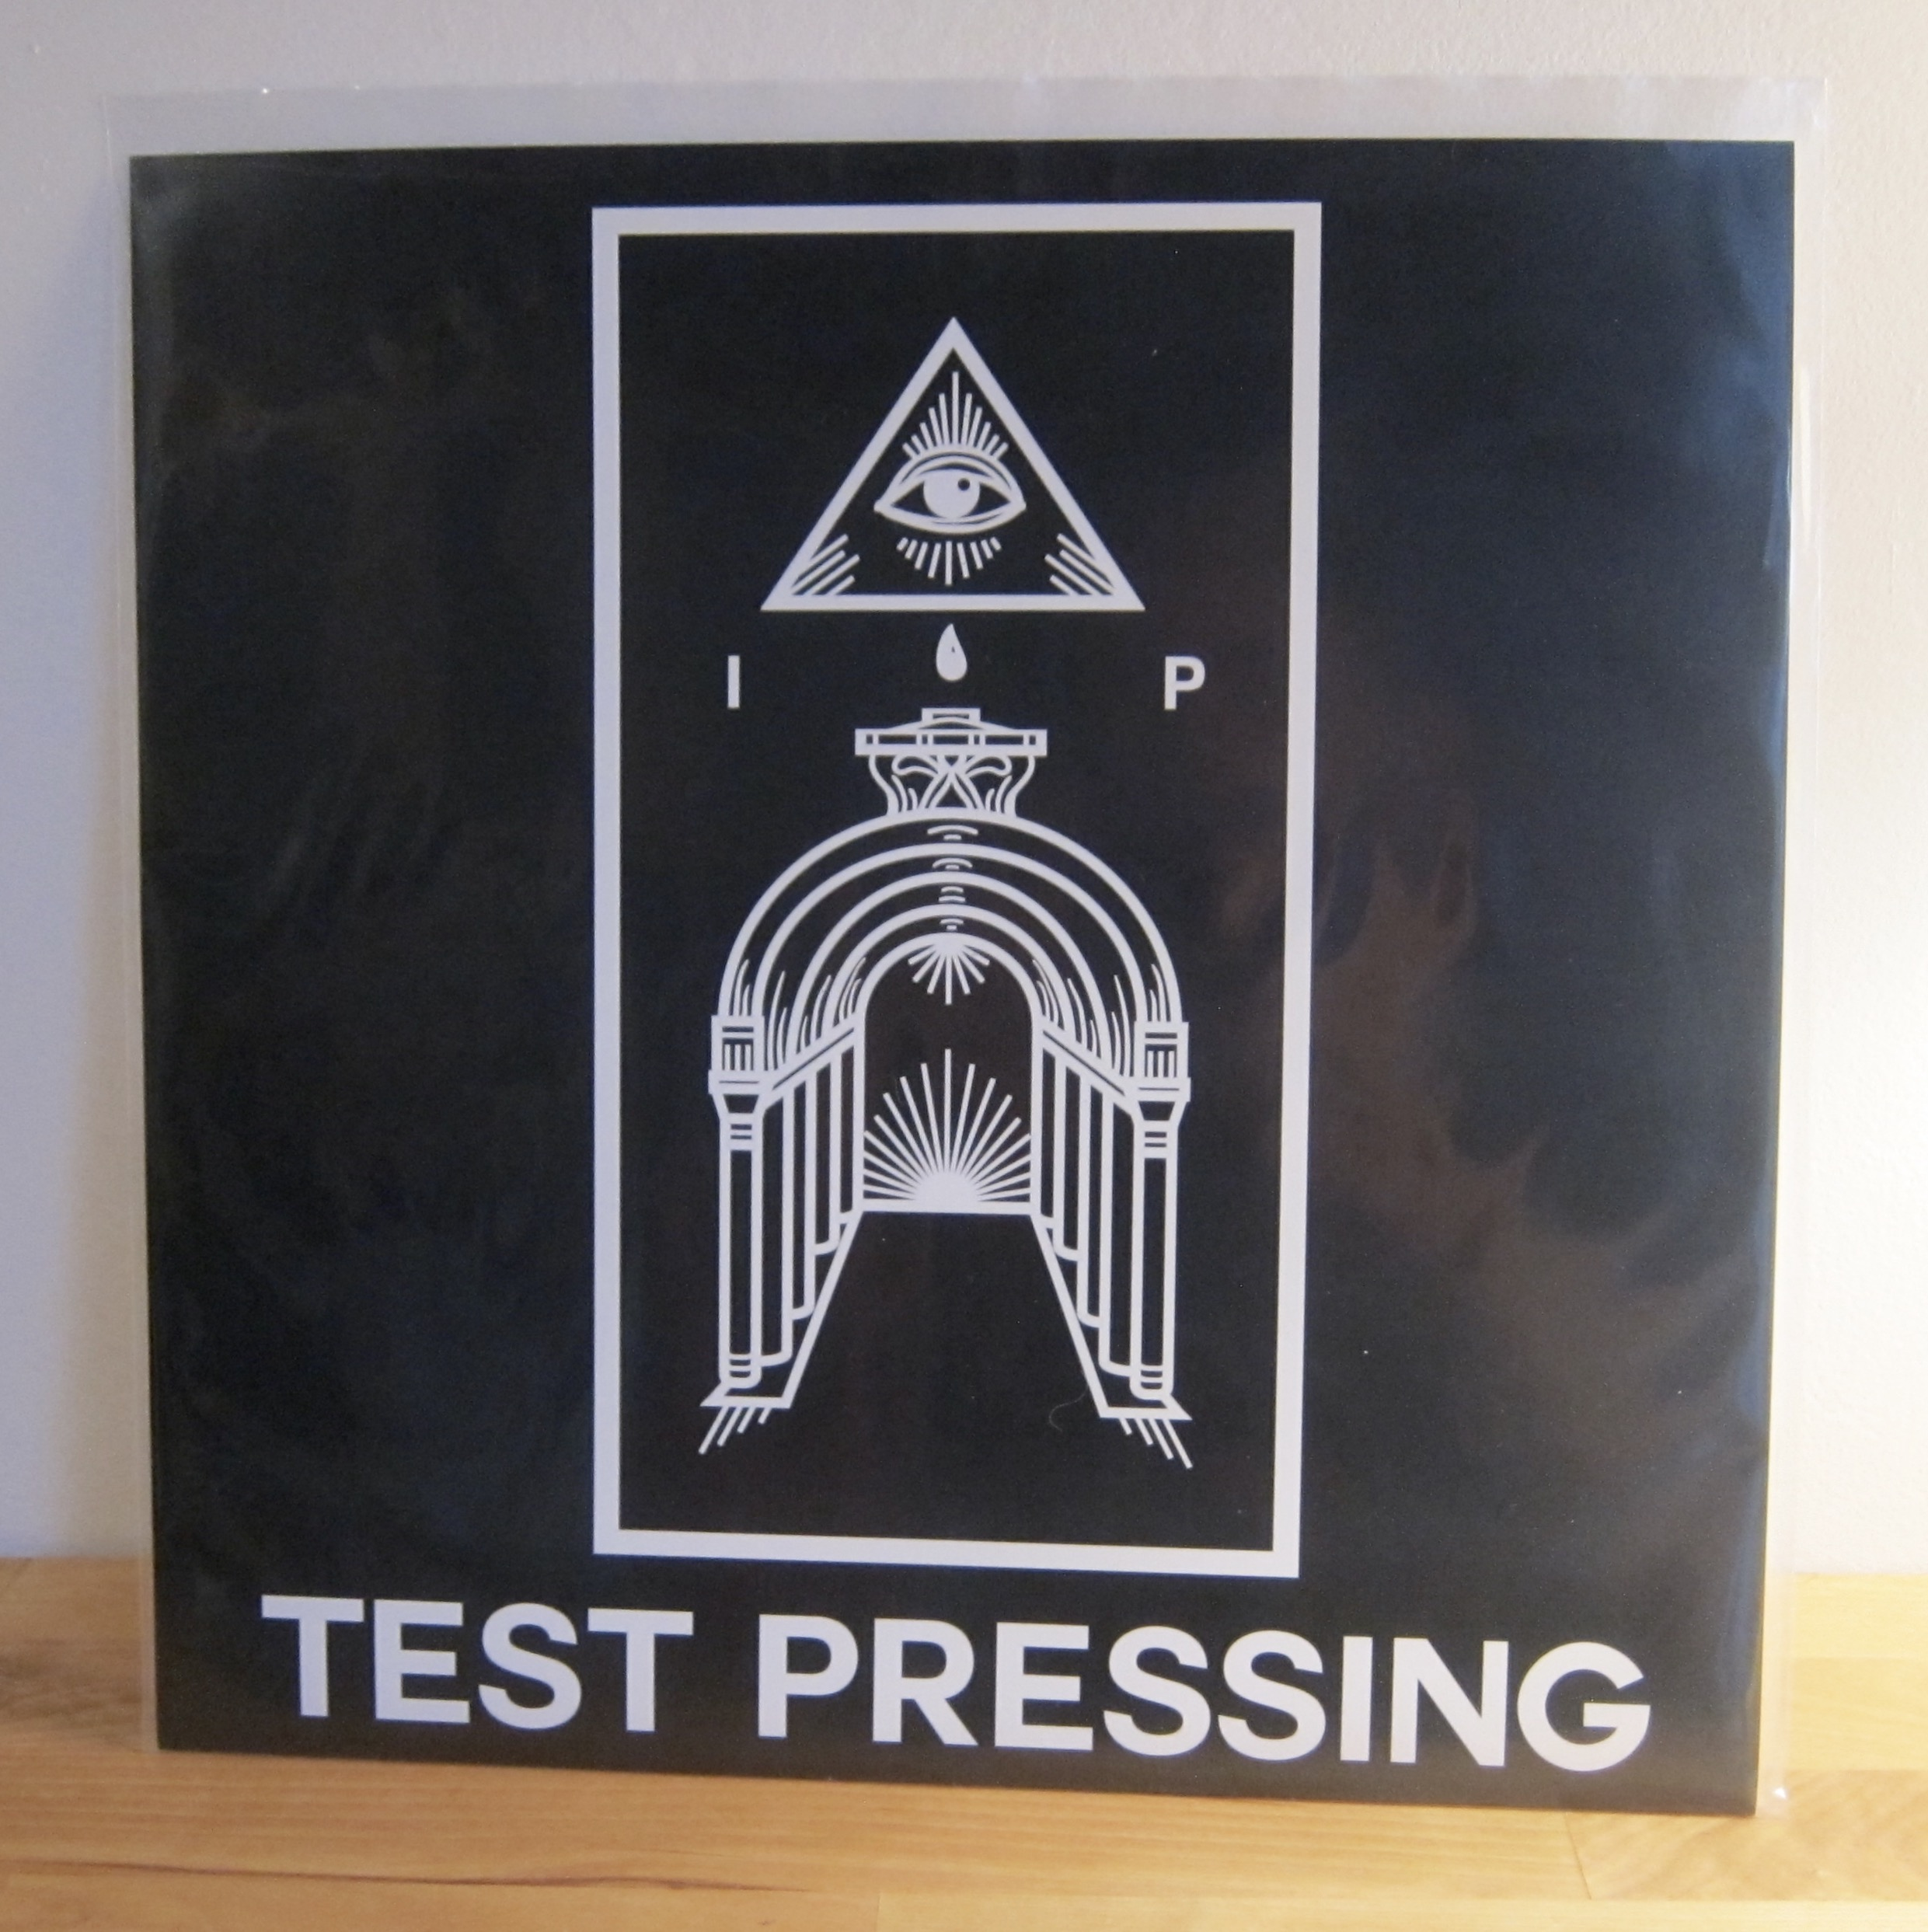 Iron Pier Test Pressings and Collectible Items